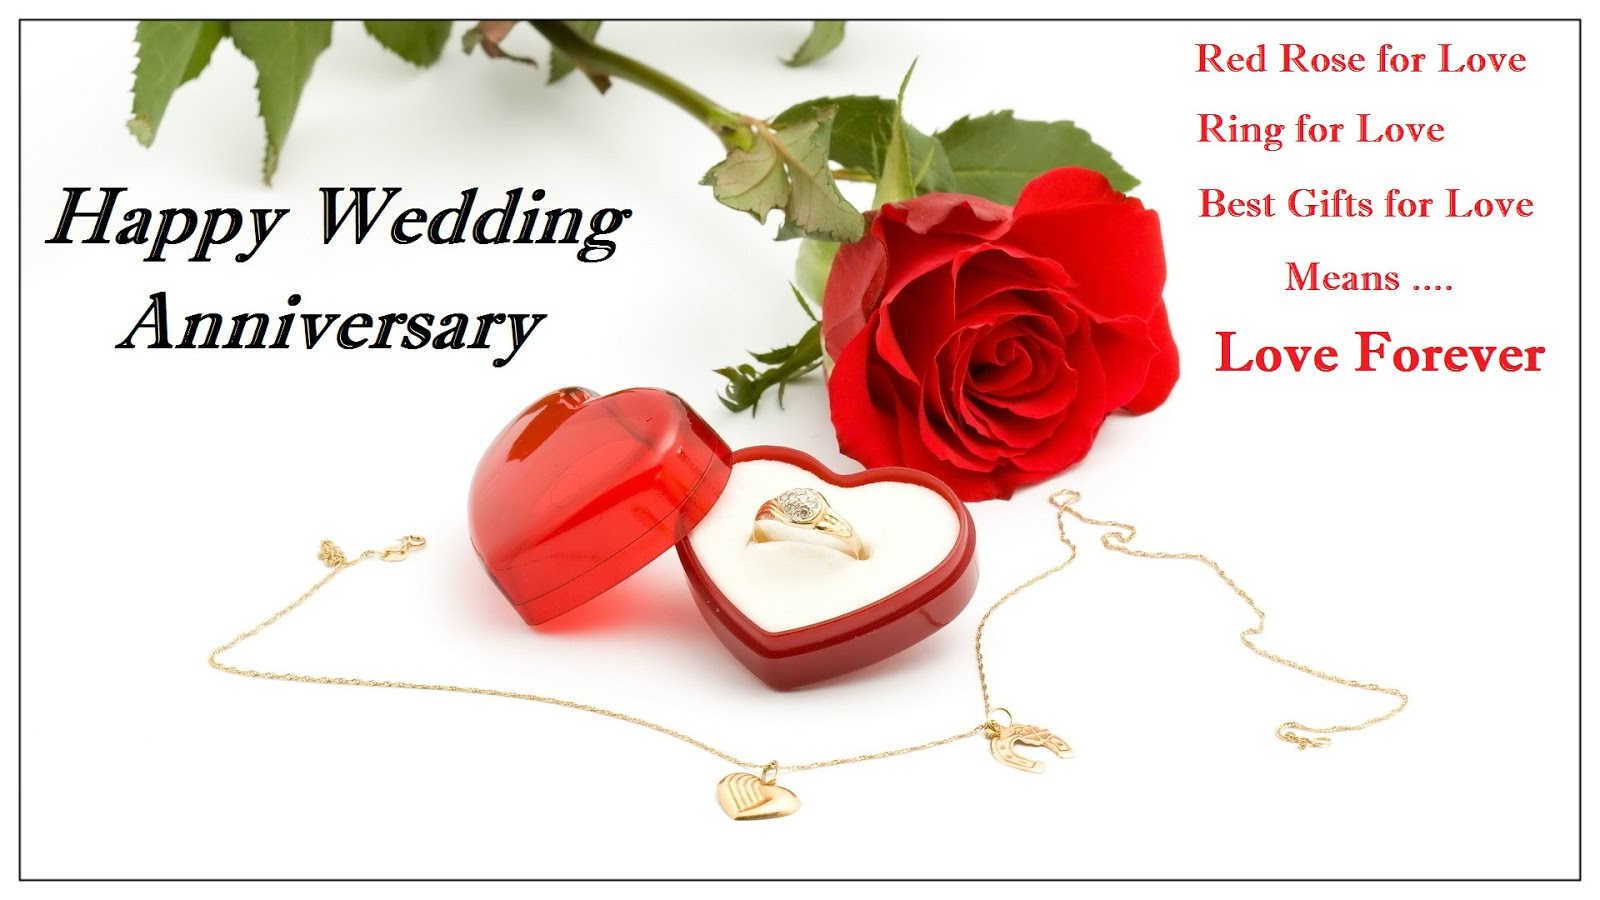 Most romentic wedding anniversary wishes